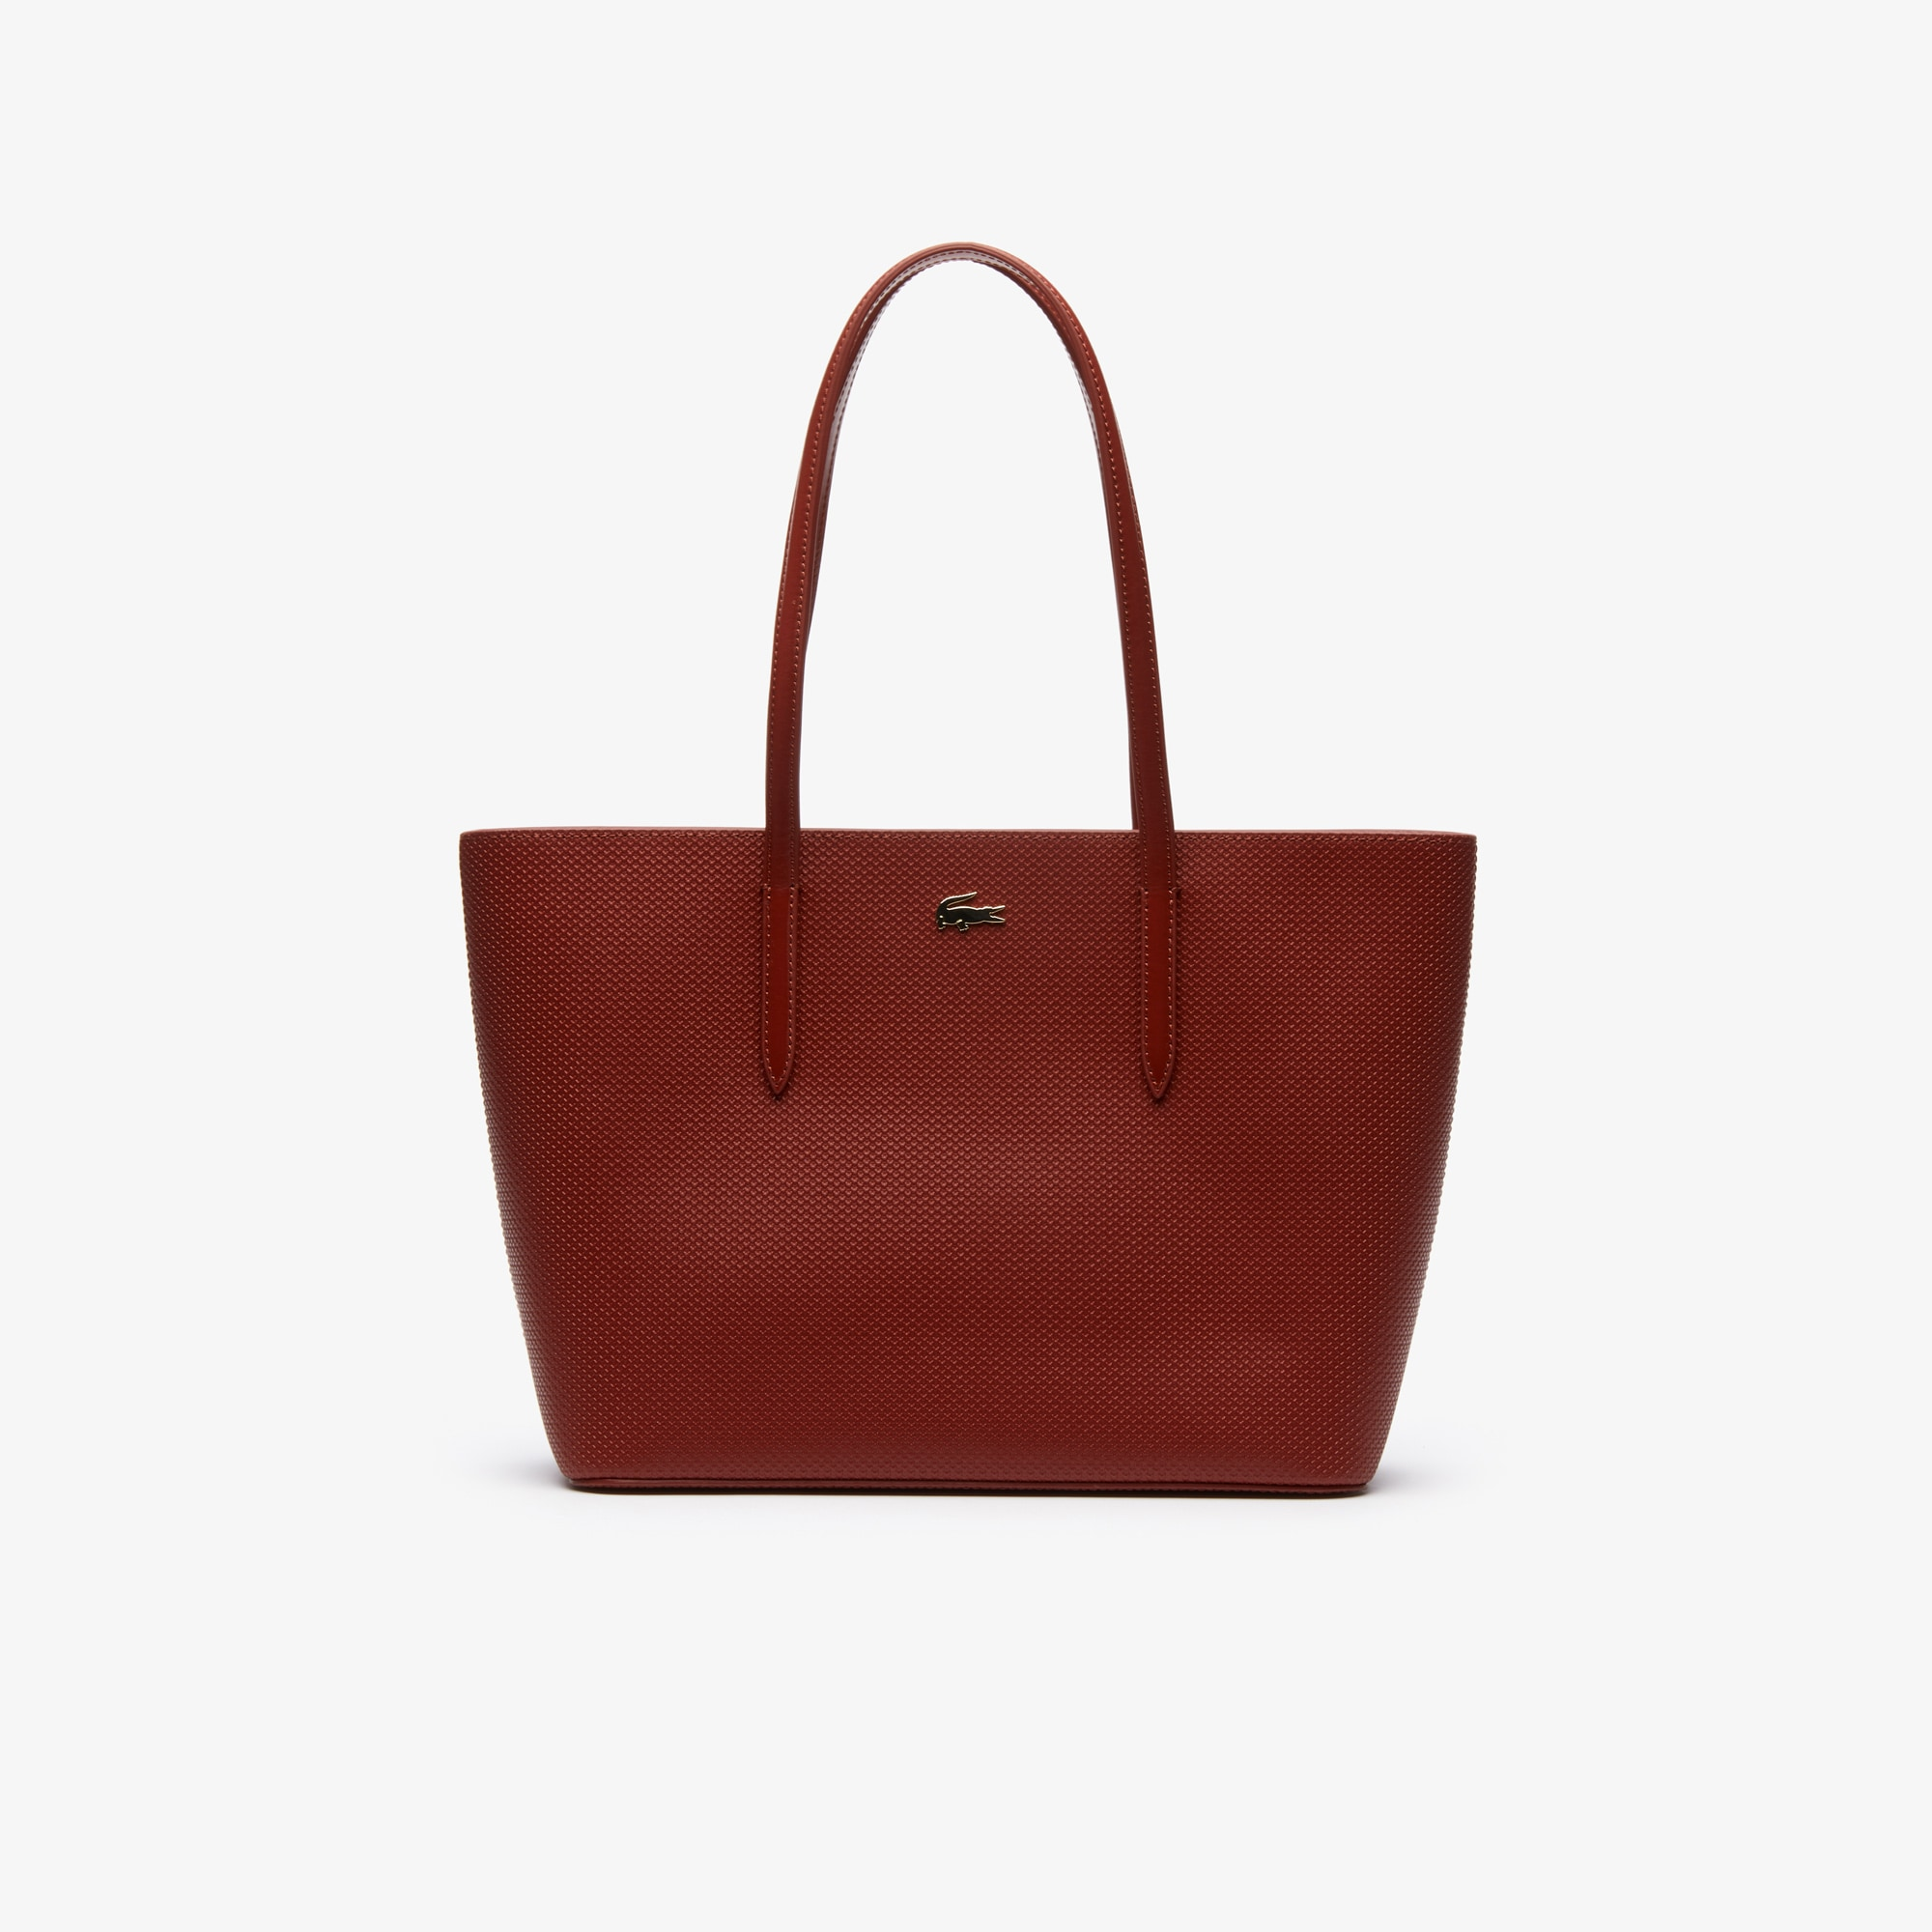 라코스테 Lacoste Womens Chantaco Pique Leather Zip Tote Bag,burnt henna